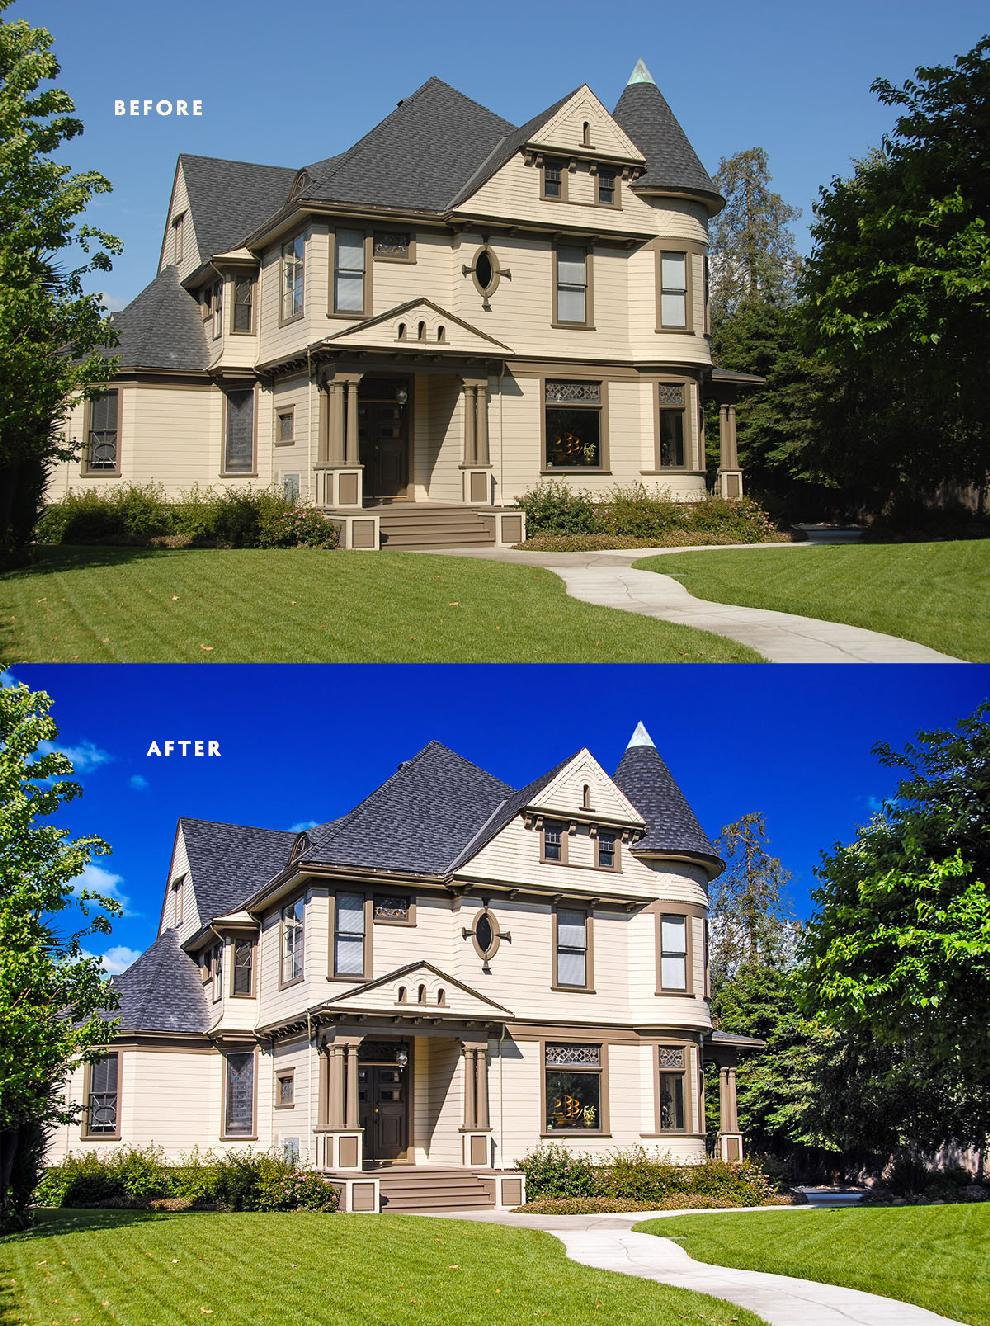 Real Estate Photo Before and After